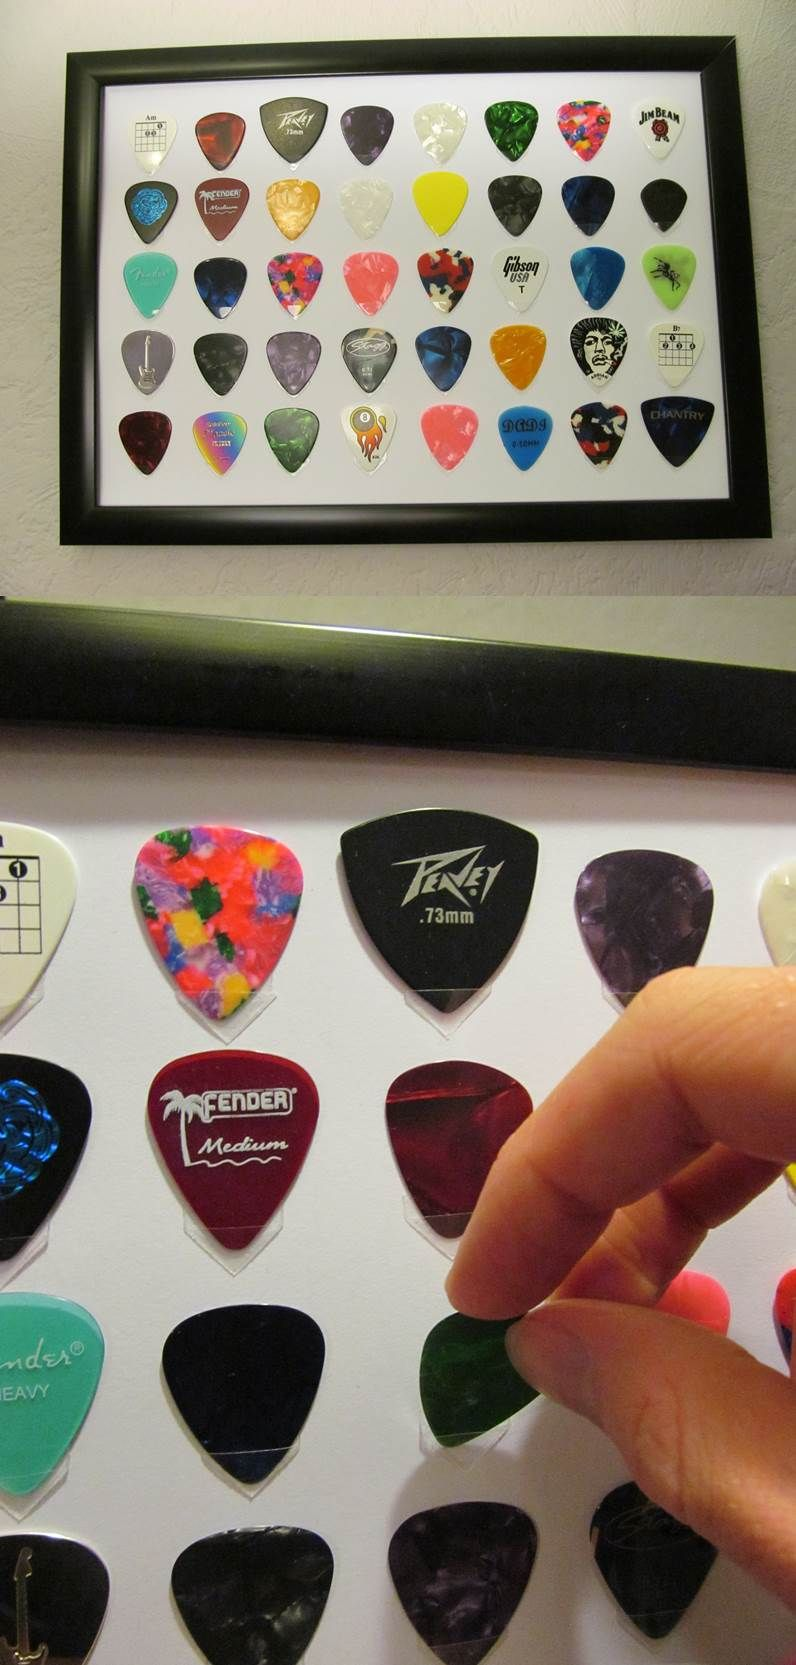 Pick Your Picks Holds Guitar Without Obscuring Any Portion Of The Plectrum Fits